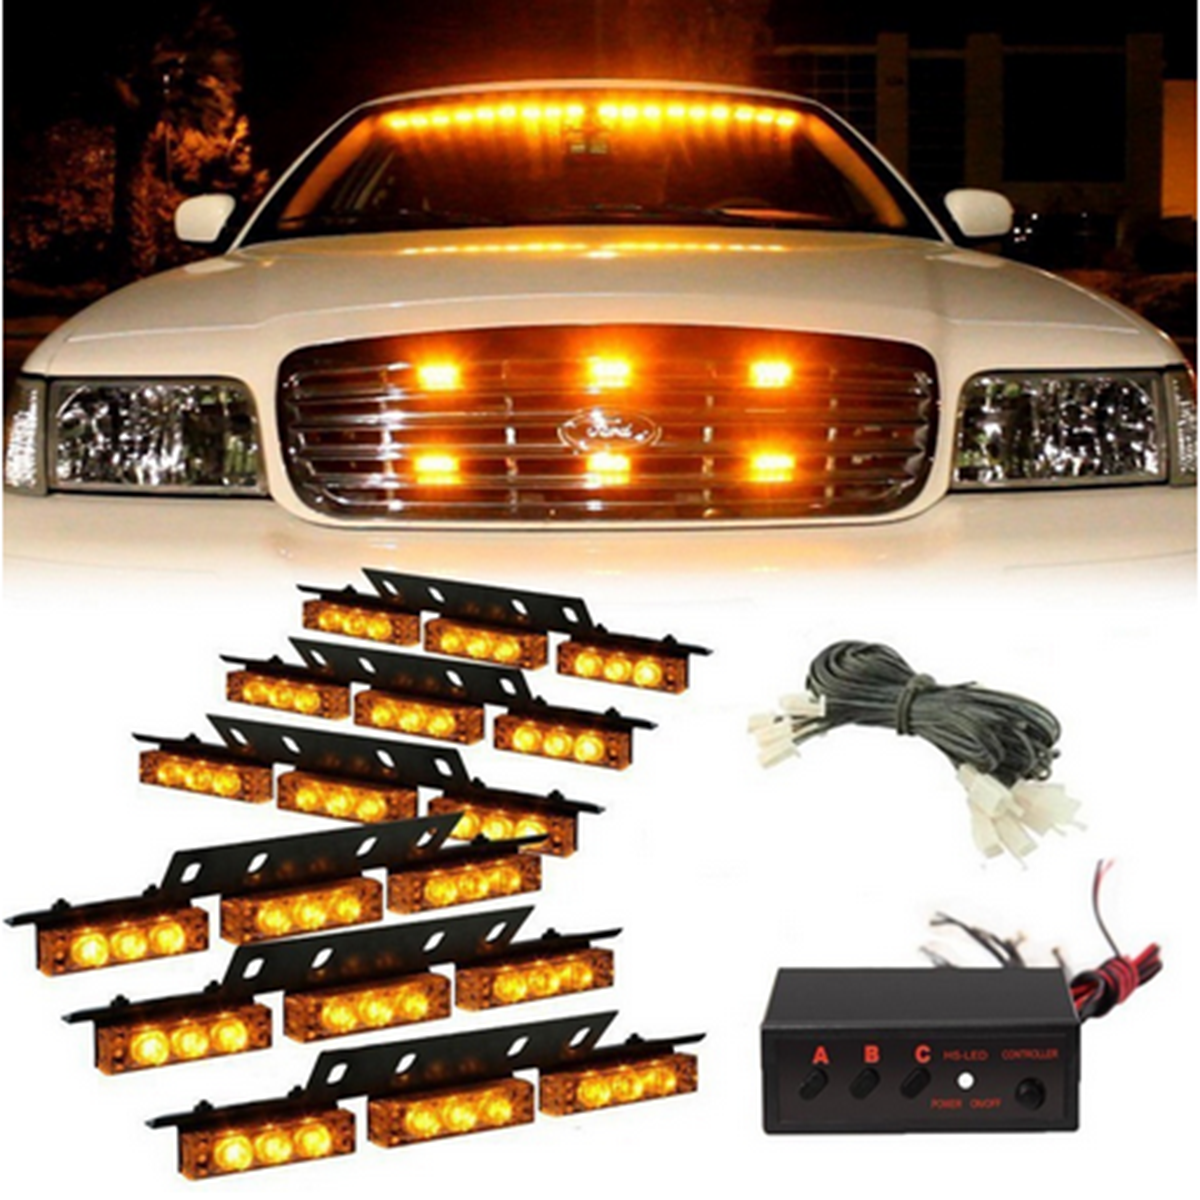 Emergency Strobe Lights >> 54 Led Emergency Strobe Lights Front Grill Flash Lamps With 3 Flashing Mode Yellow For 12v Vehicles